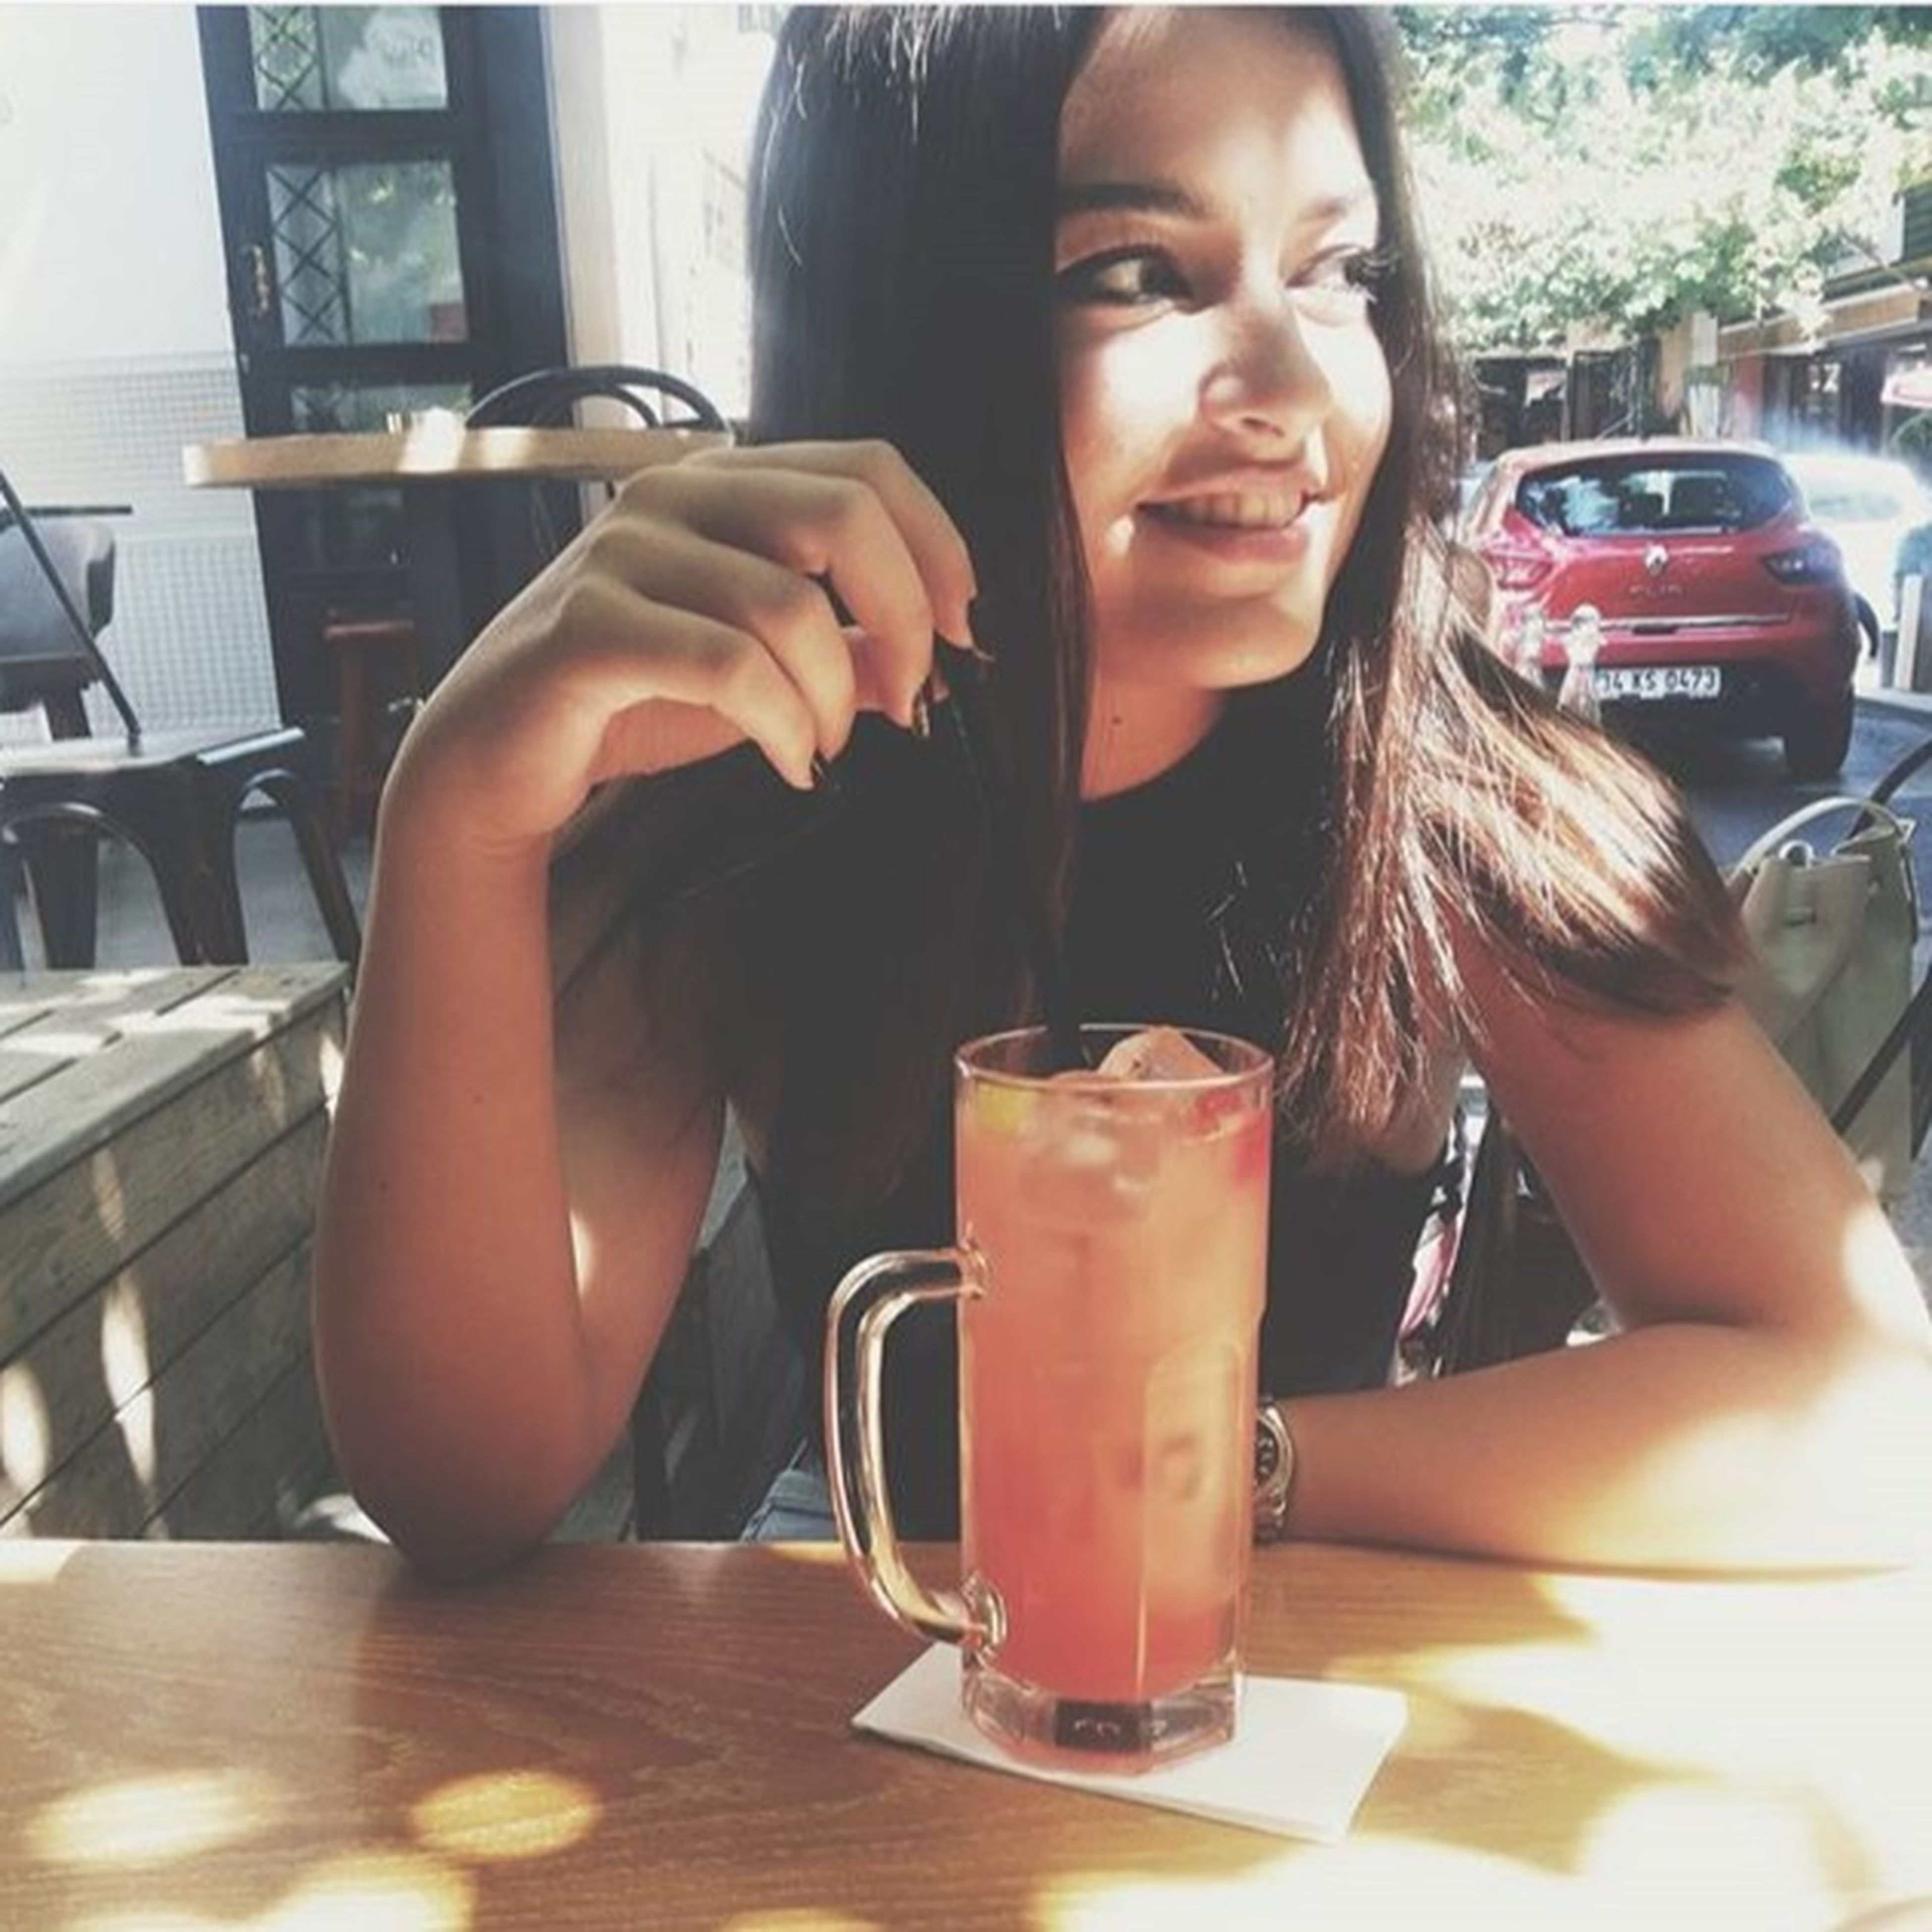 food and drink, lifestyles, drink, person, leisure activity, holding, young adult, refreshment, freshness, food, front view, table, indoors, casual clothing, sitting, looking at camera, portrait, young women